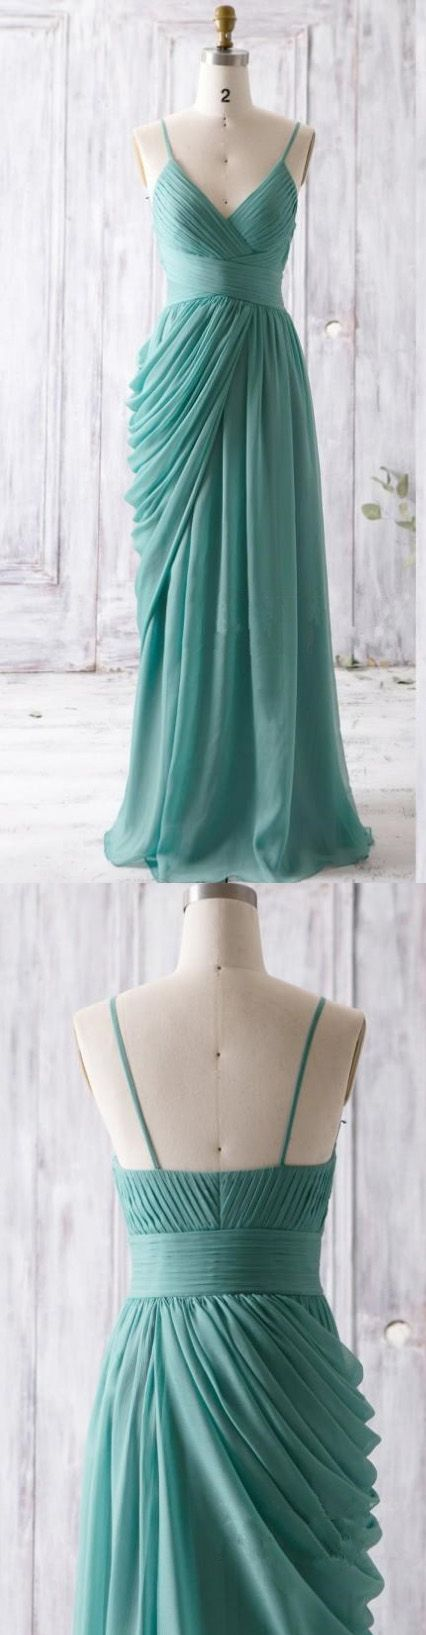 Backless Spaghetti Prom Dress,Pleated Prom Dress,Custom Made Evening Dress,17074